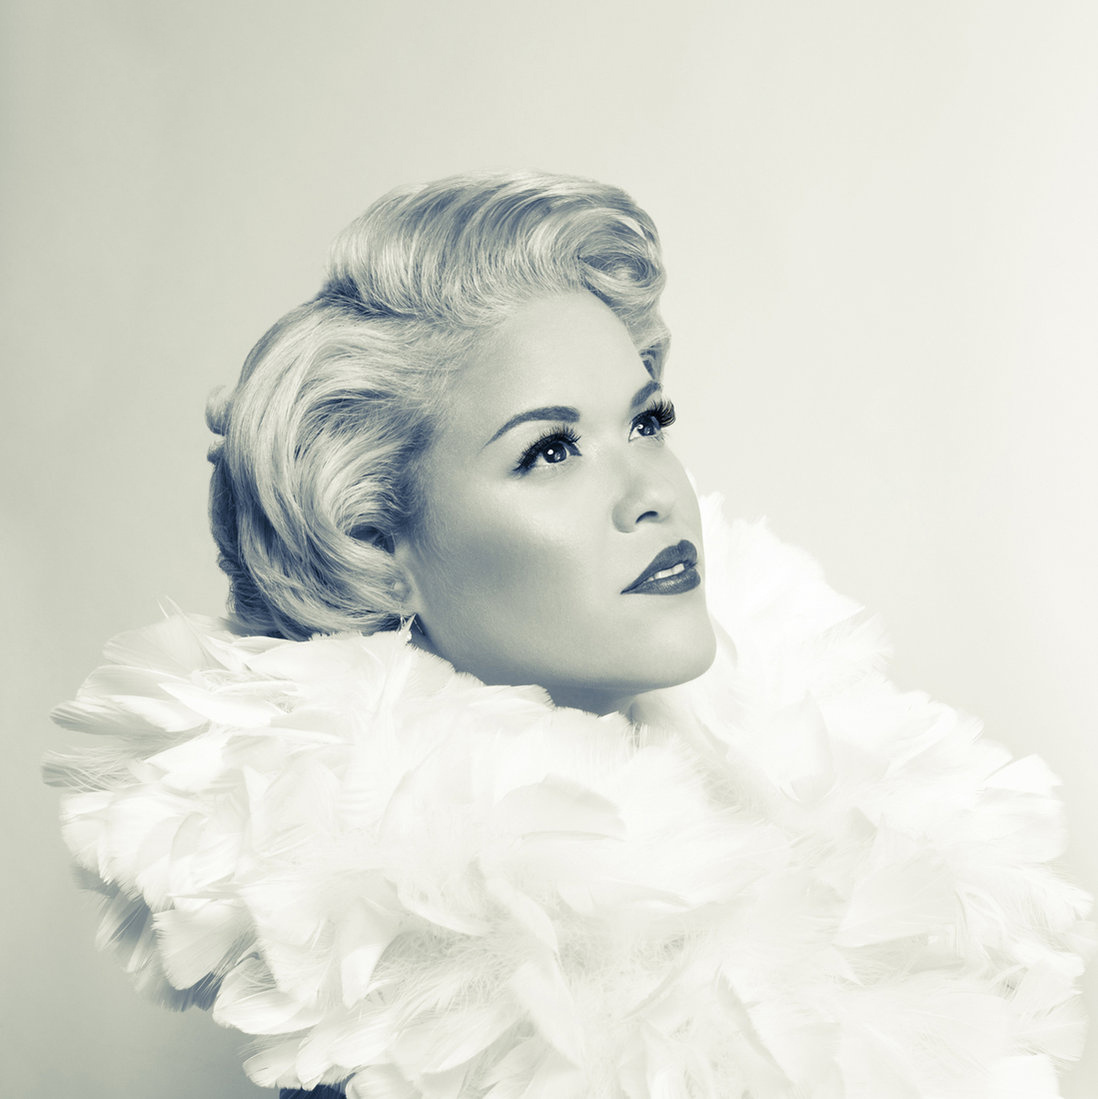 Custom portrait shot for  Shameless Photography , a retro inspired studio that uses photography to empower women  Involvement: Concept design, photography,post production,hair and wardrobe styling